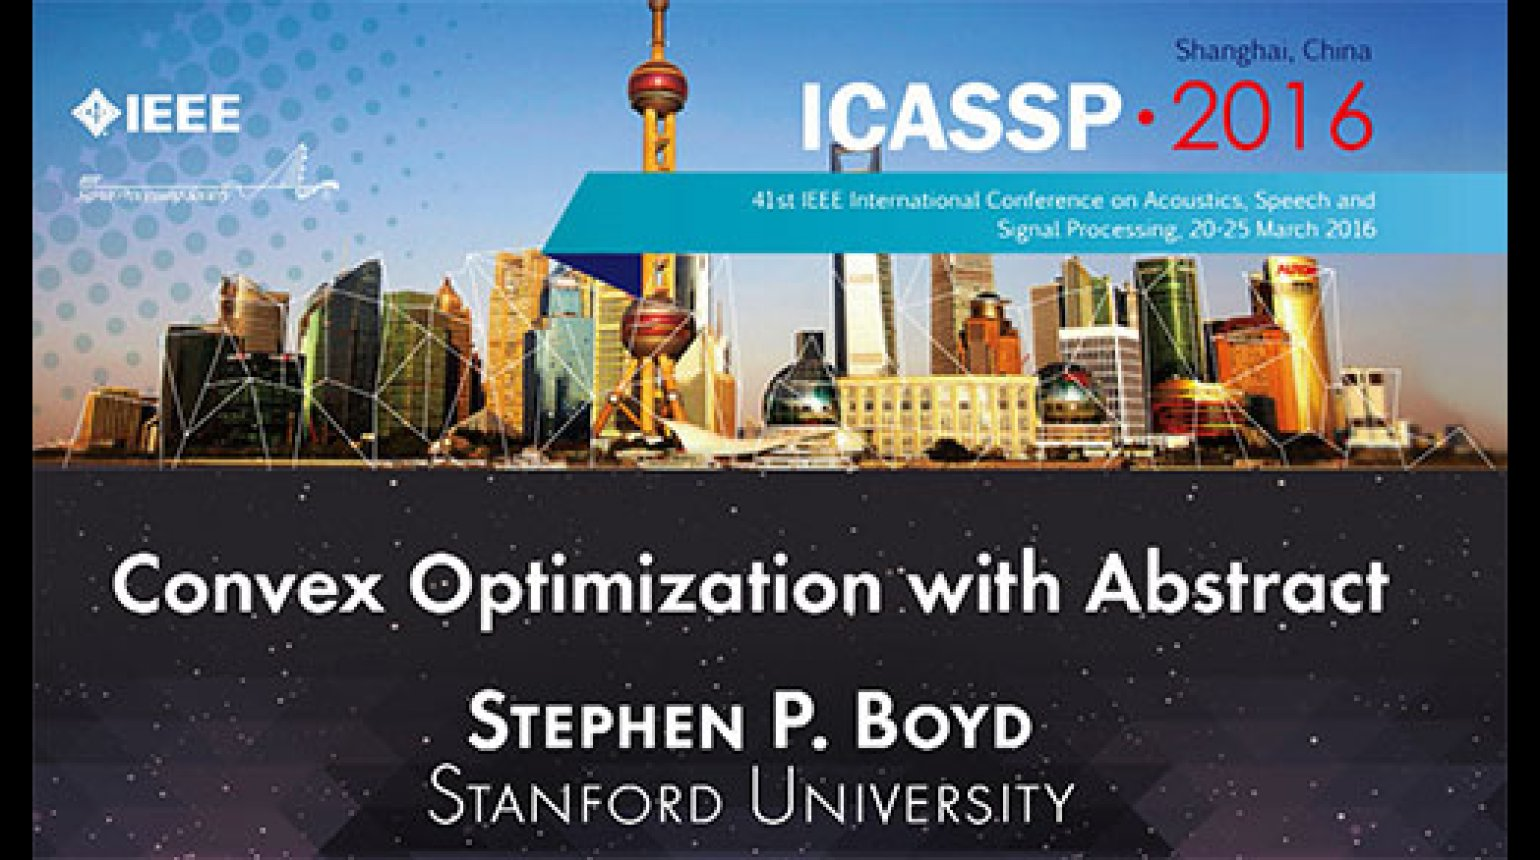 ICASSP 2016 Convex Optimization with Abstract